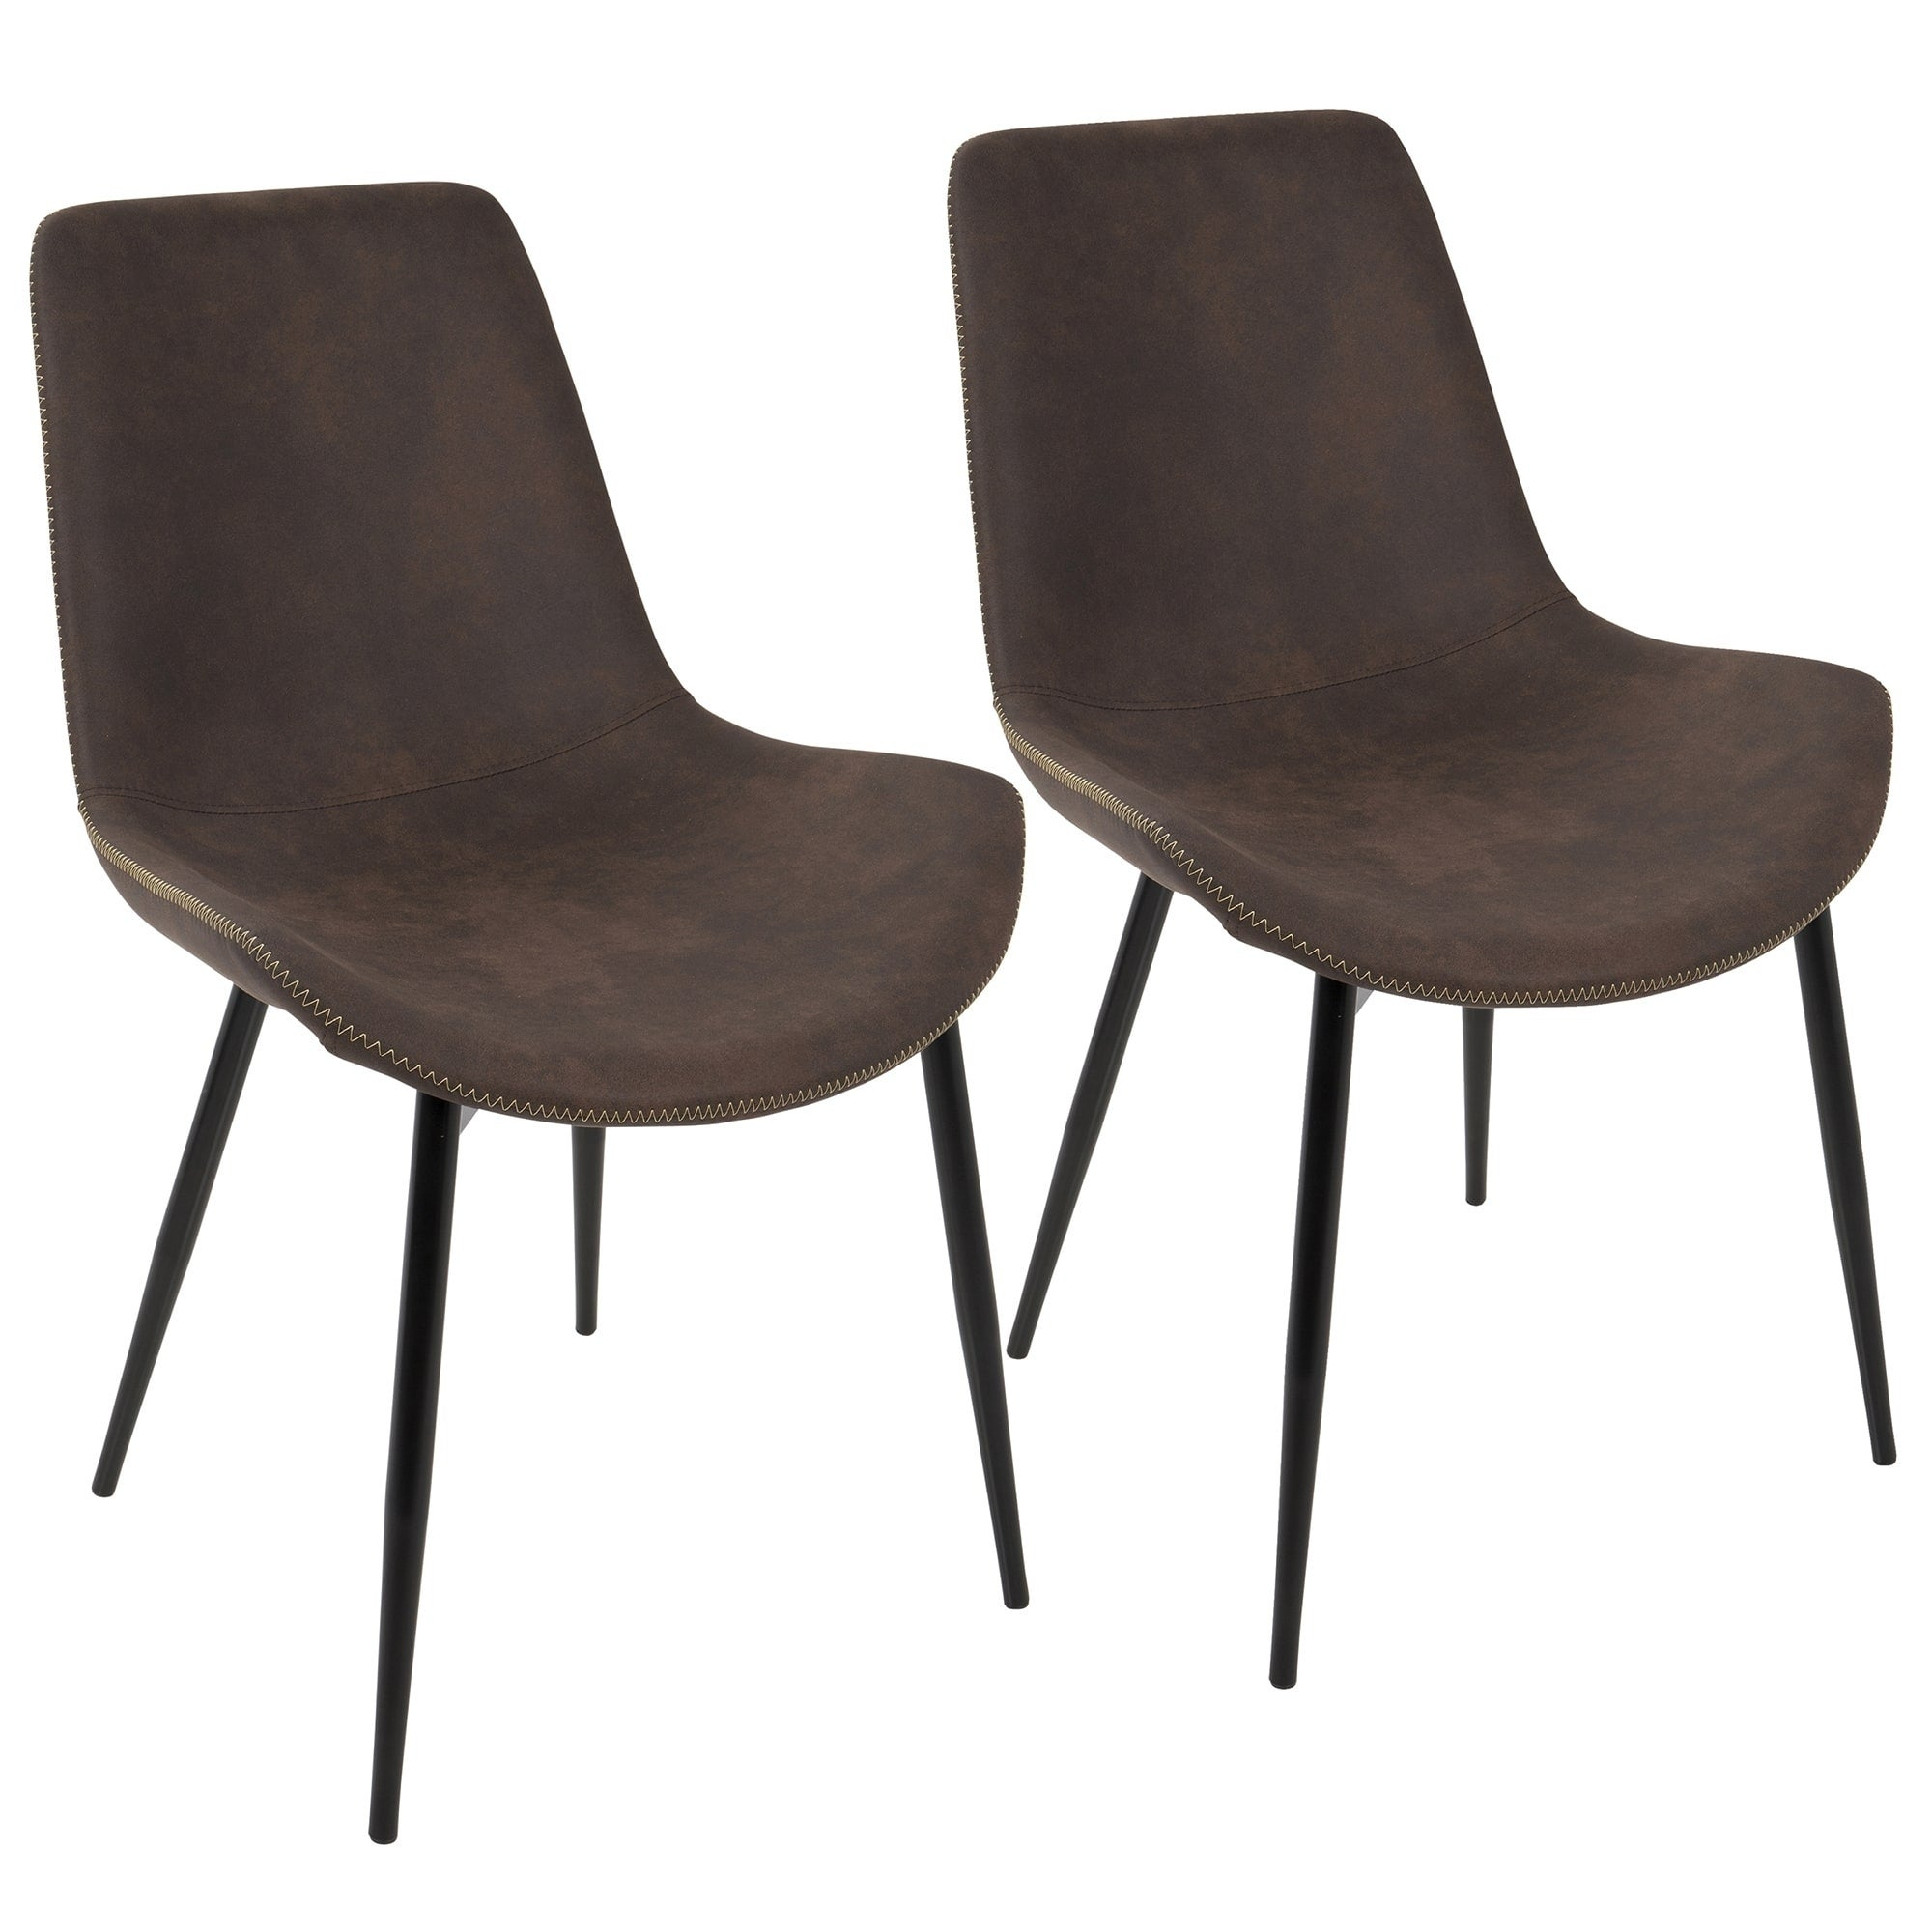 Attrayant Shop Carbon Loft Florence Black Metal Industrial Dining Chairs (Set Of 2)    On Sale   Free Shipping Today   Overstock   23122901